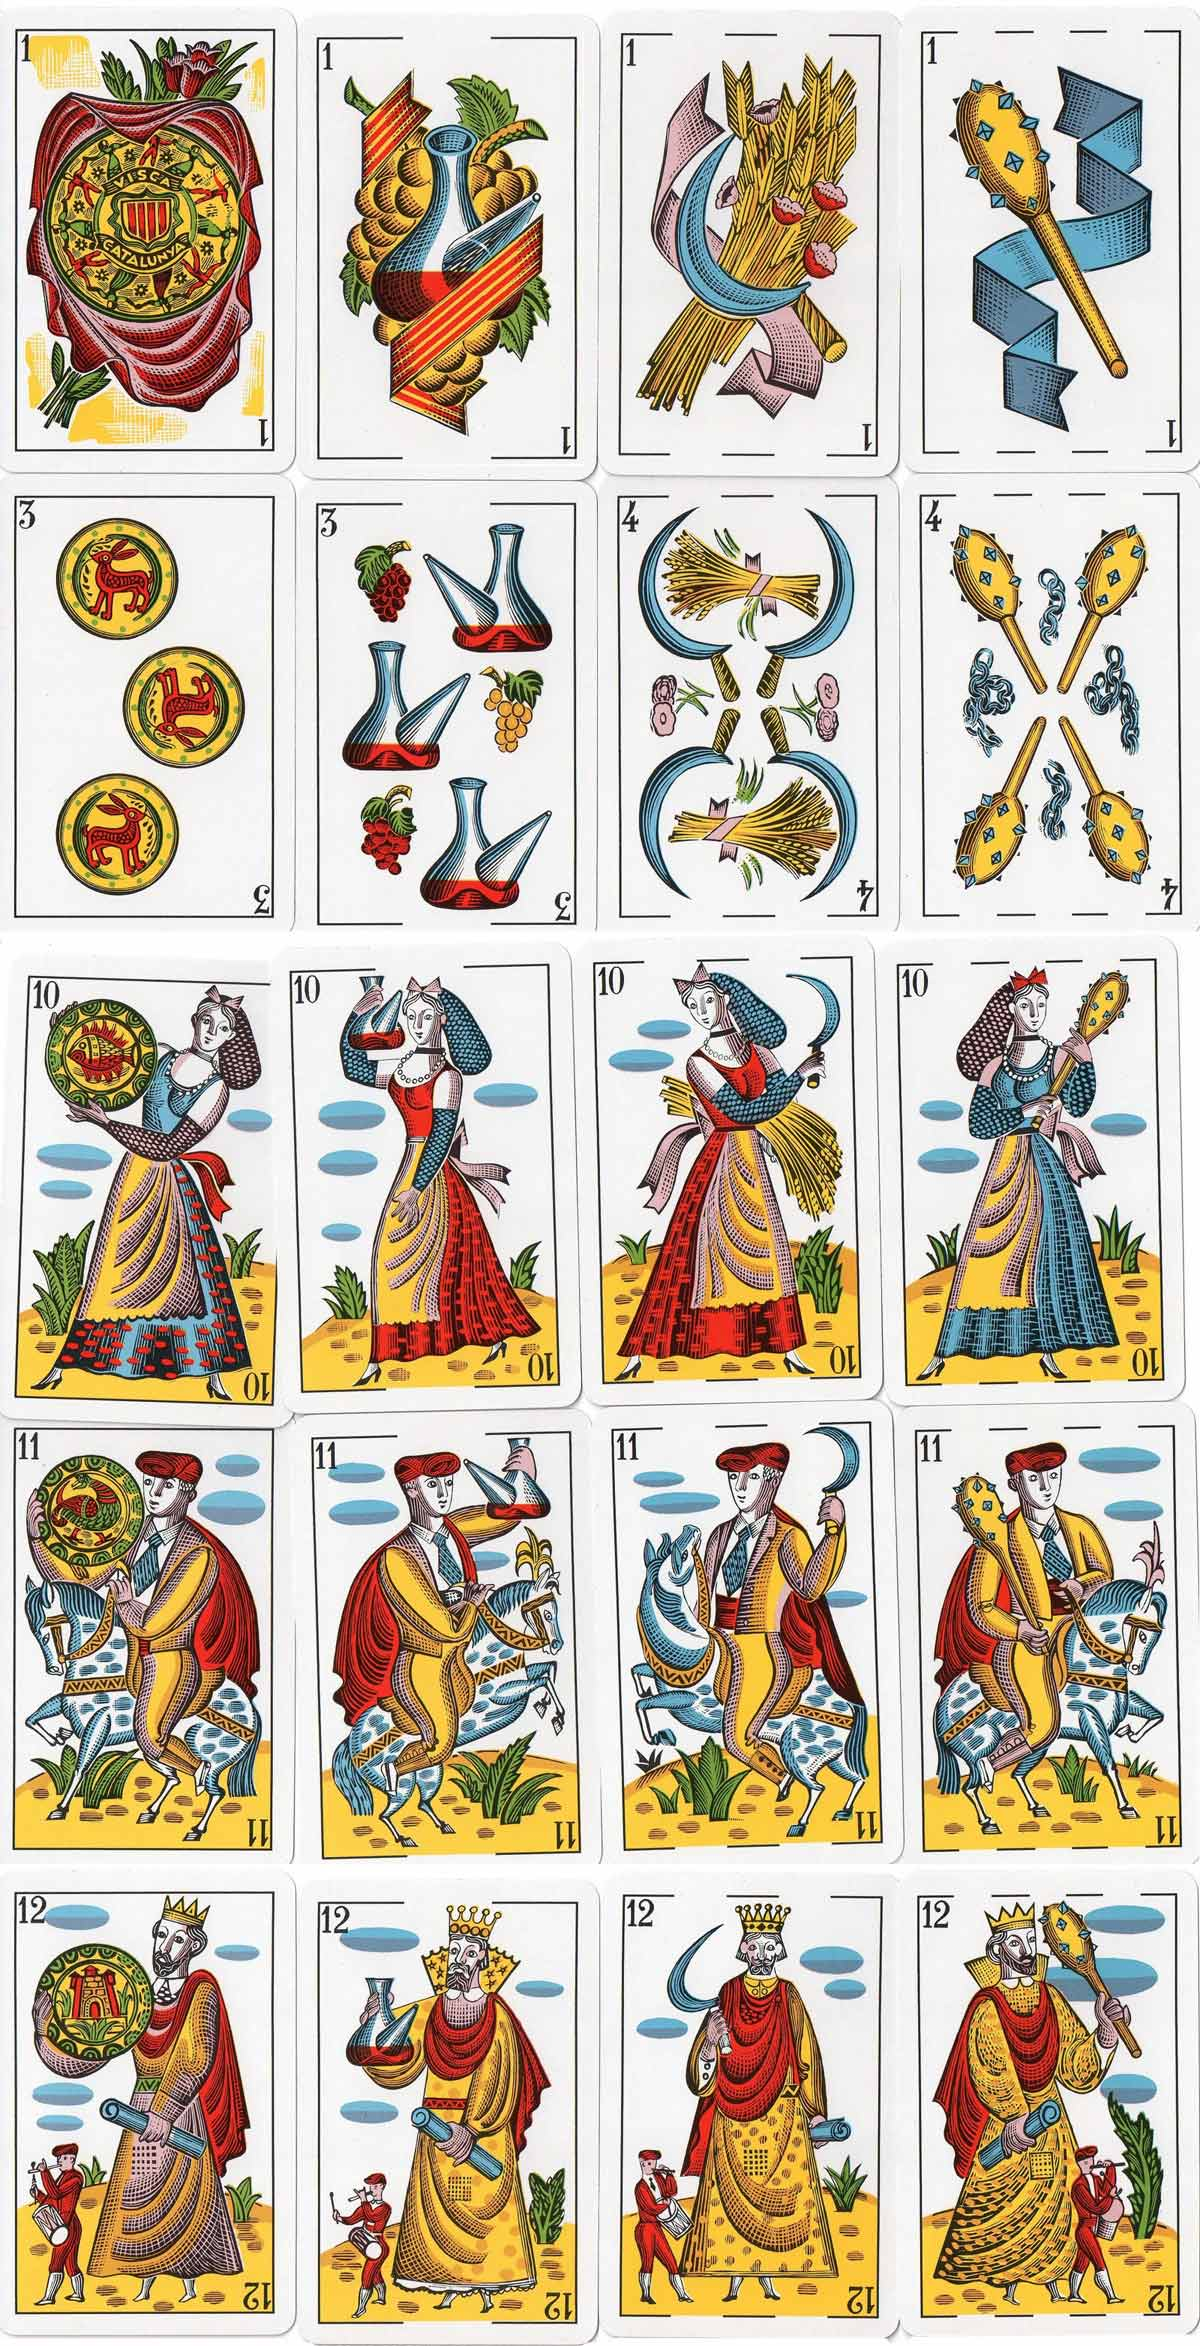 'Visca Catalunya' playing cards designed by Molné in 1935